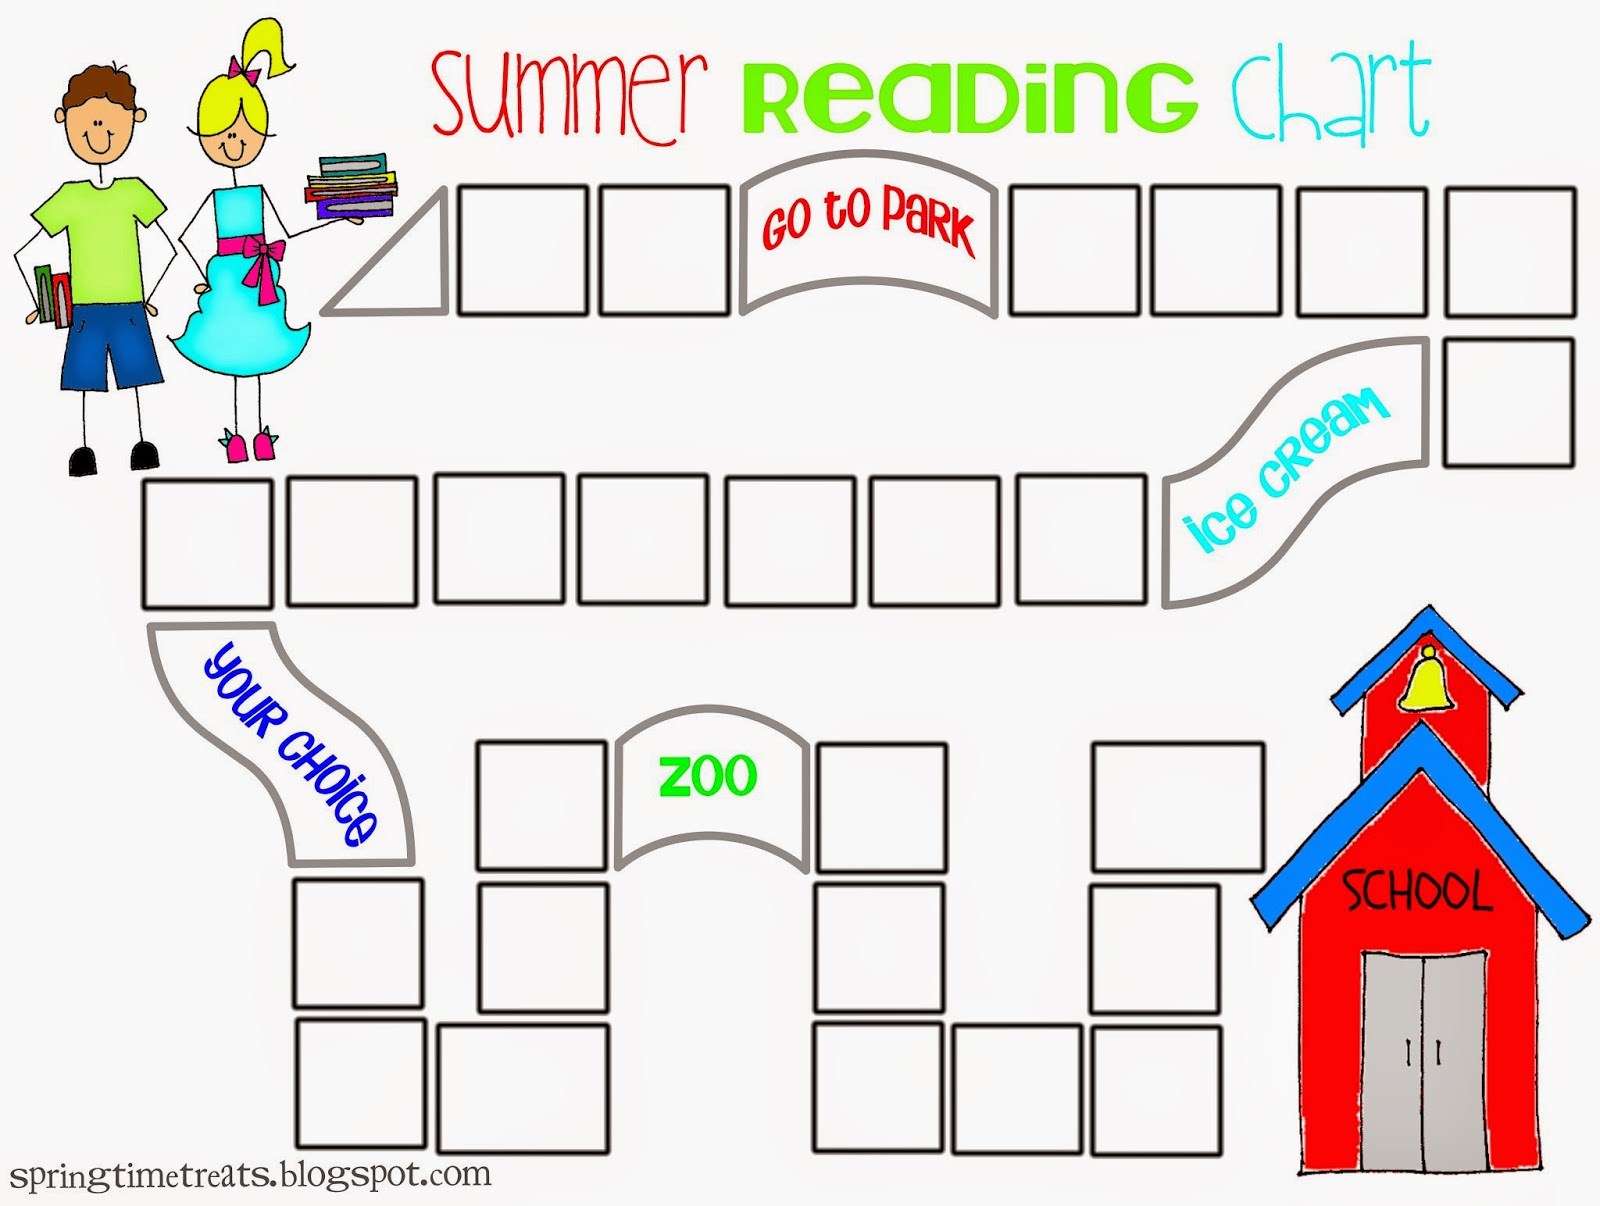 picture relating to Printable Reading Charts known as Cost-free printable reading through charts for youngsters - Totally free printable